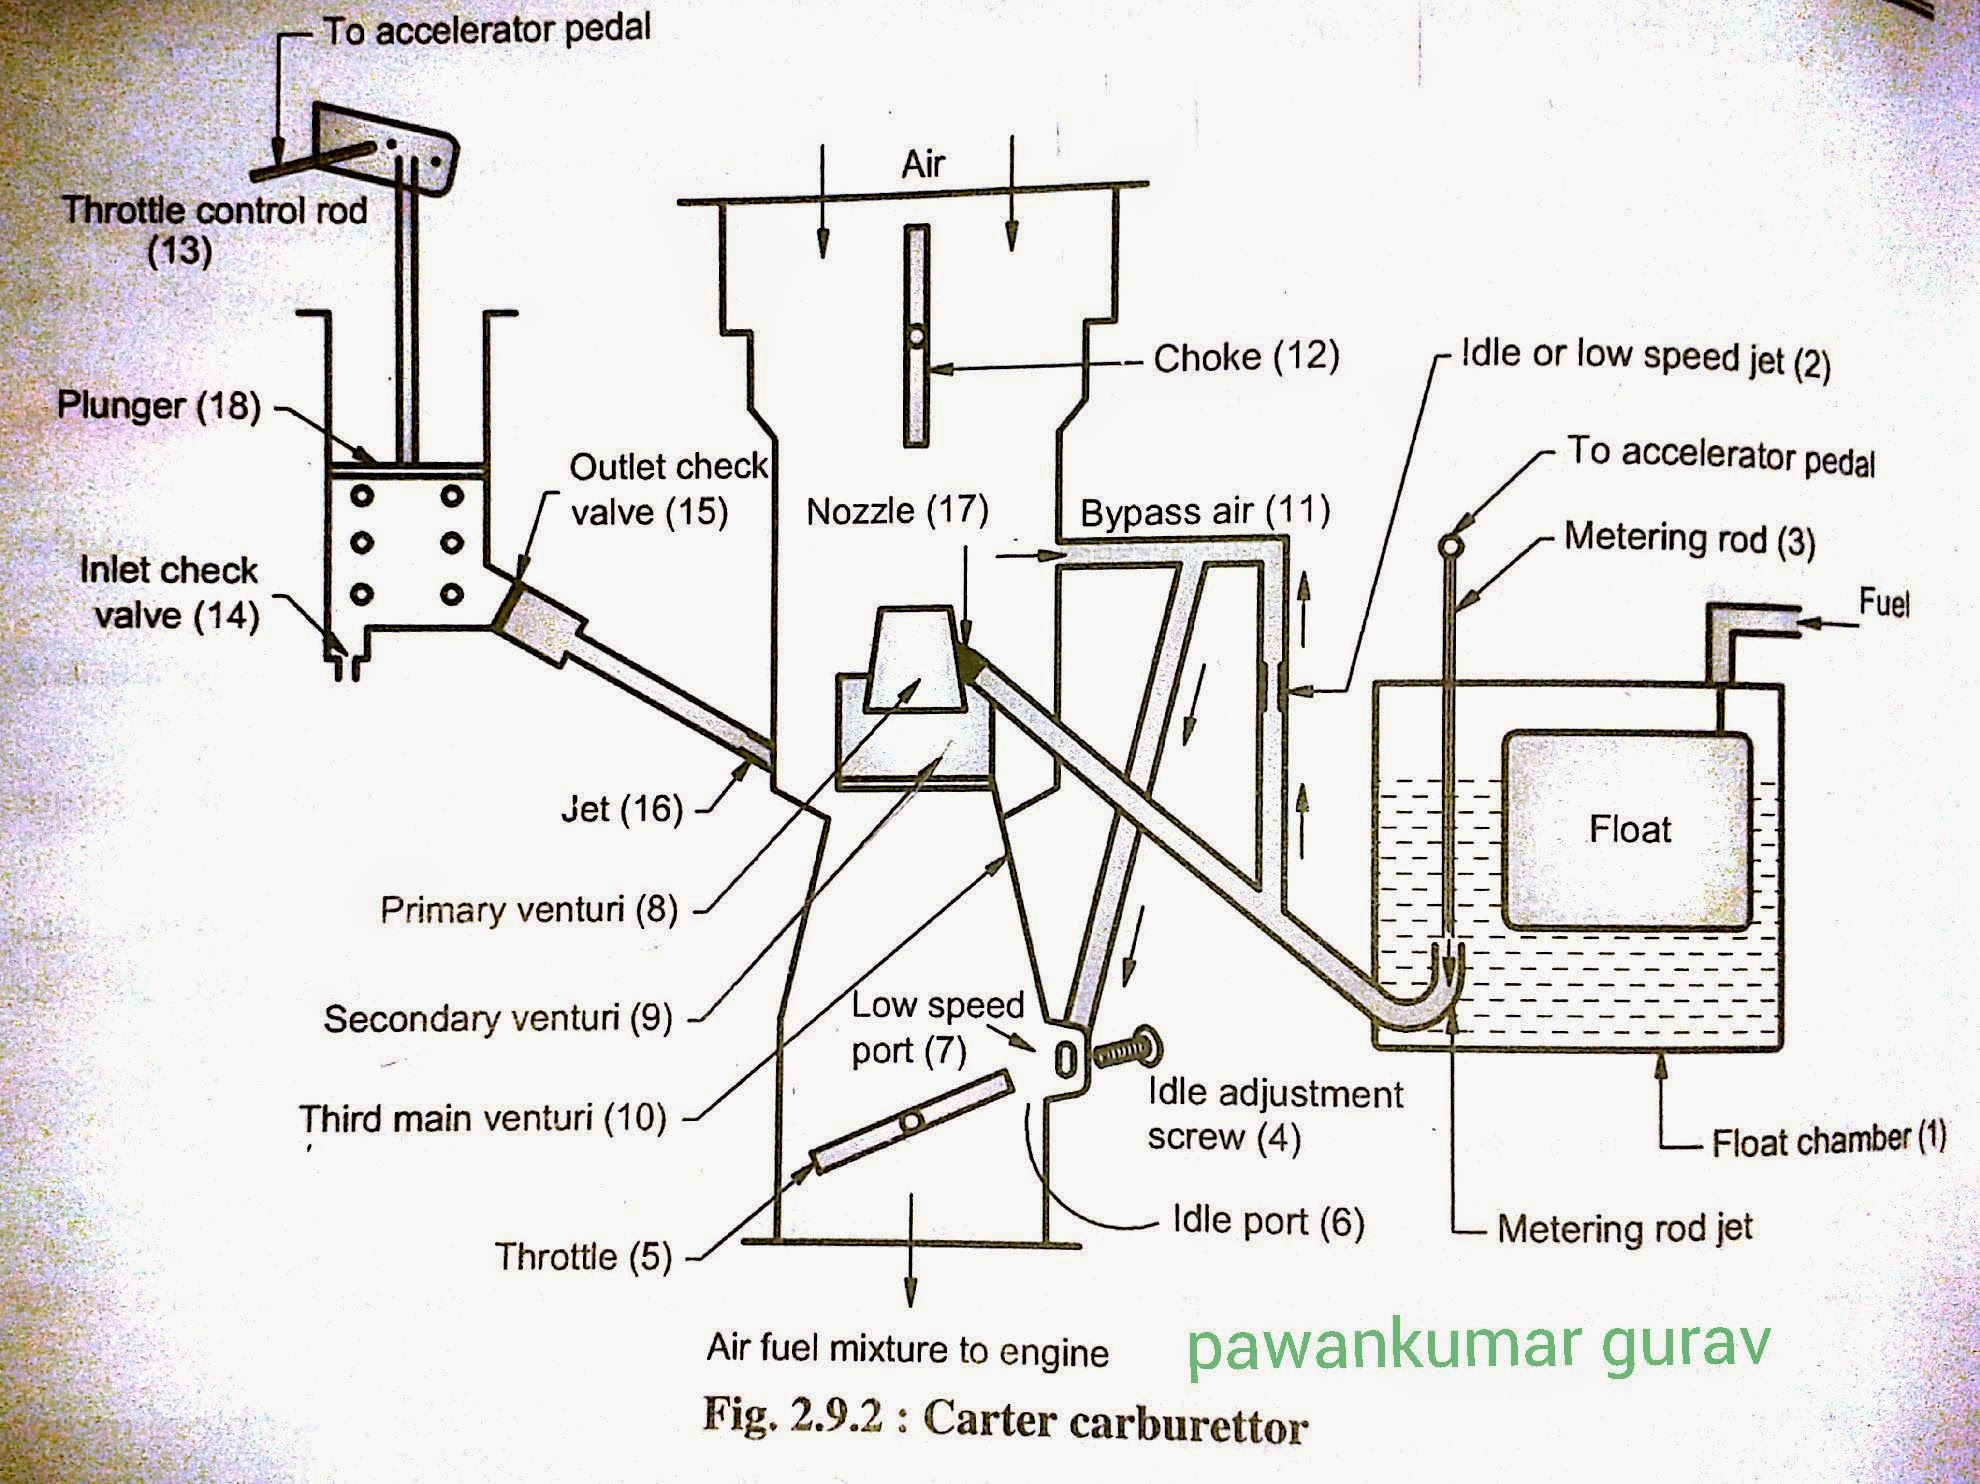 carter carburetor diagram wiring library u2022 rh wiremea com carter yf carburetor diagram carter ys carburetor diagram